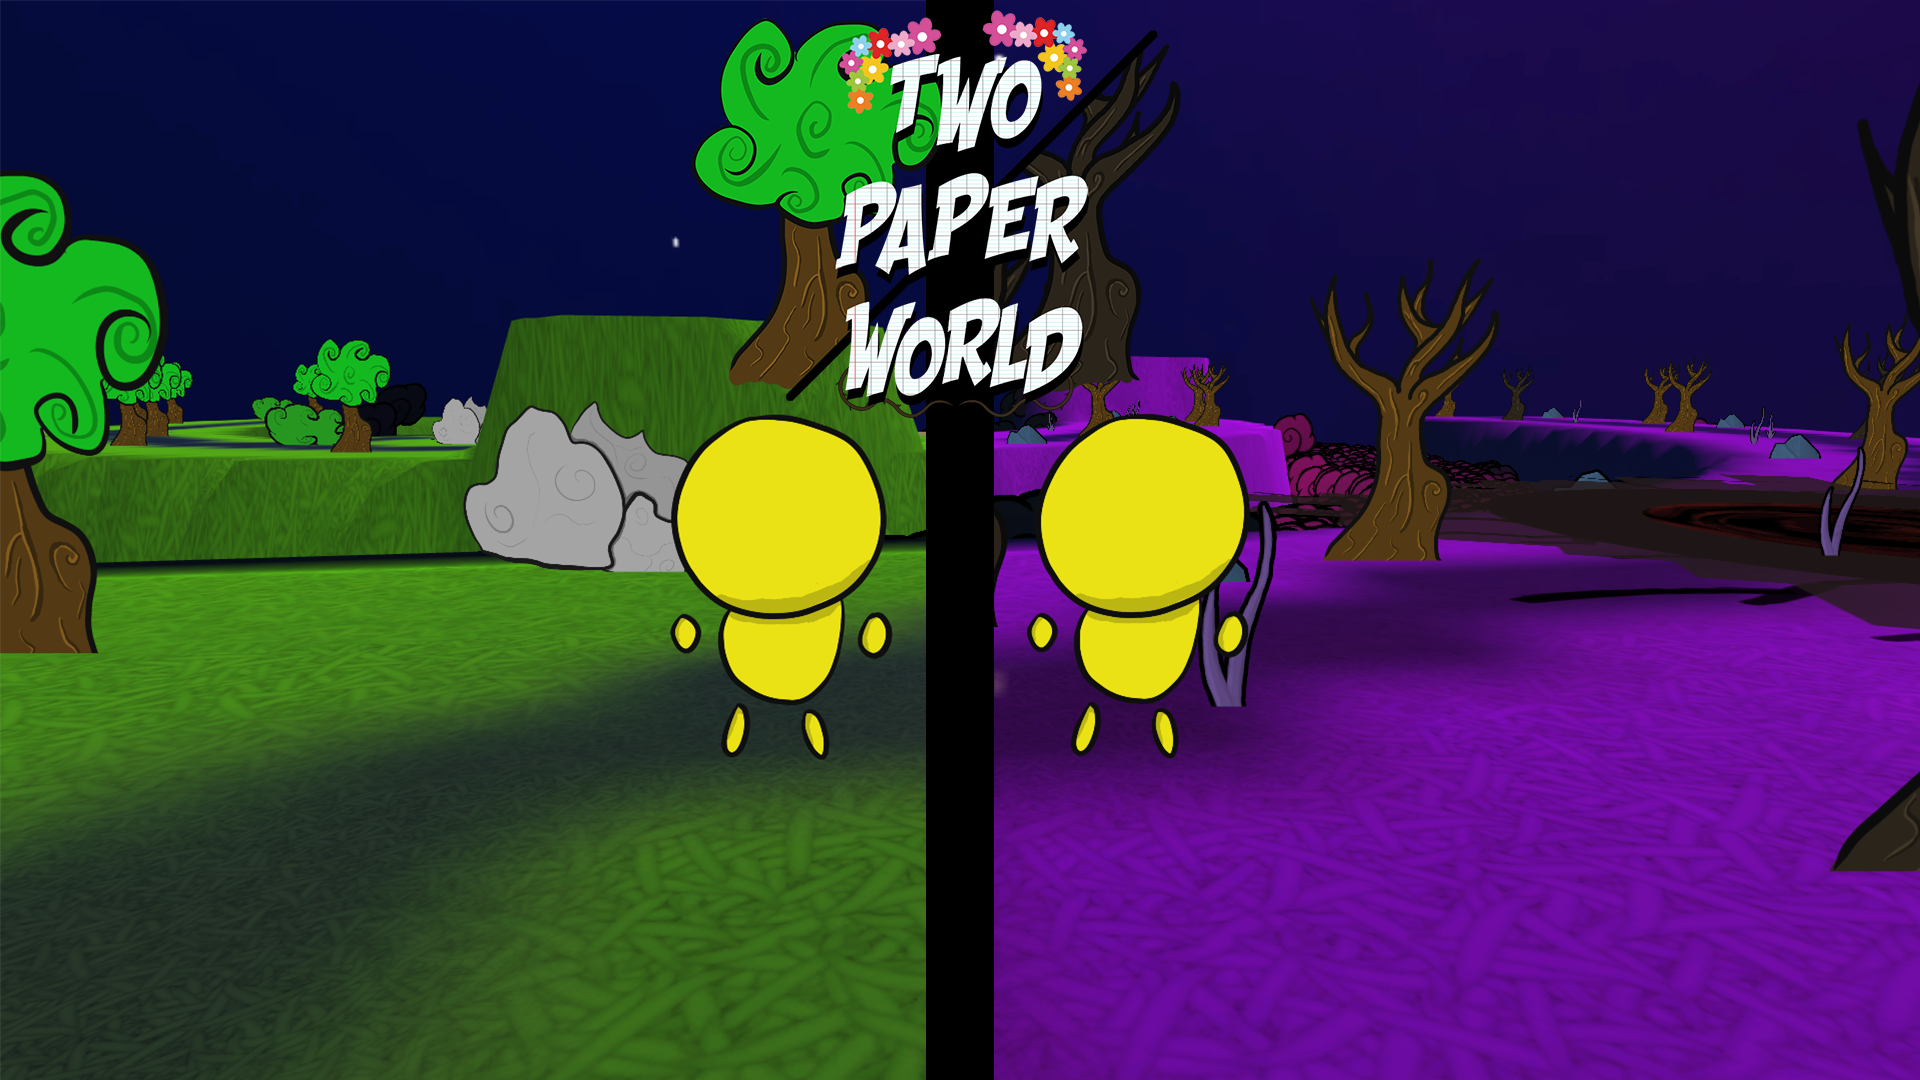 Two Paper World